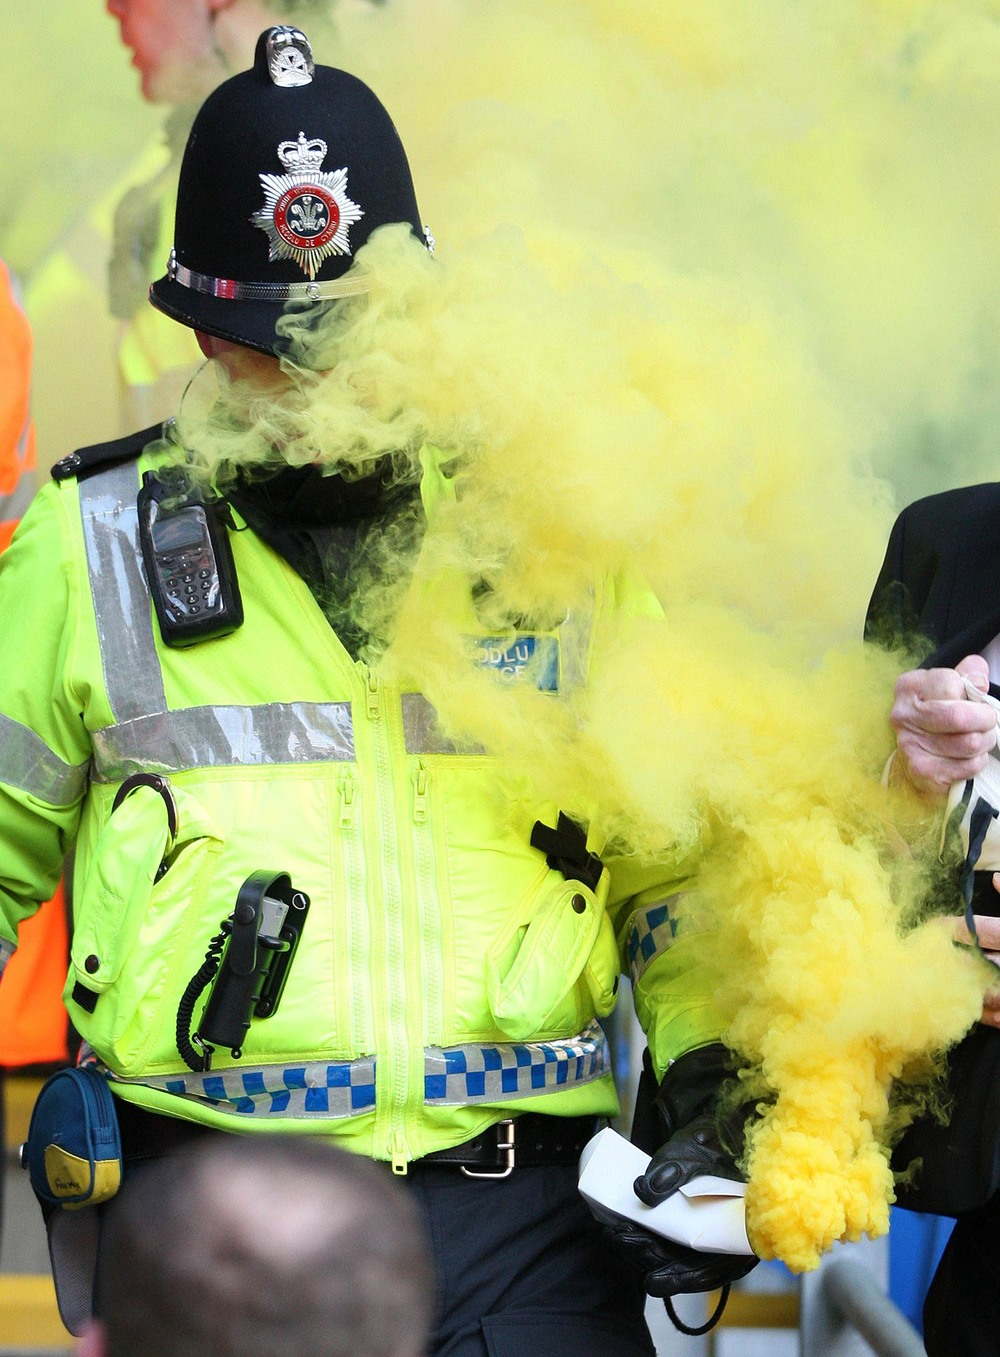 Police officer removes a smoke bomb from football match